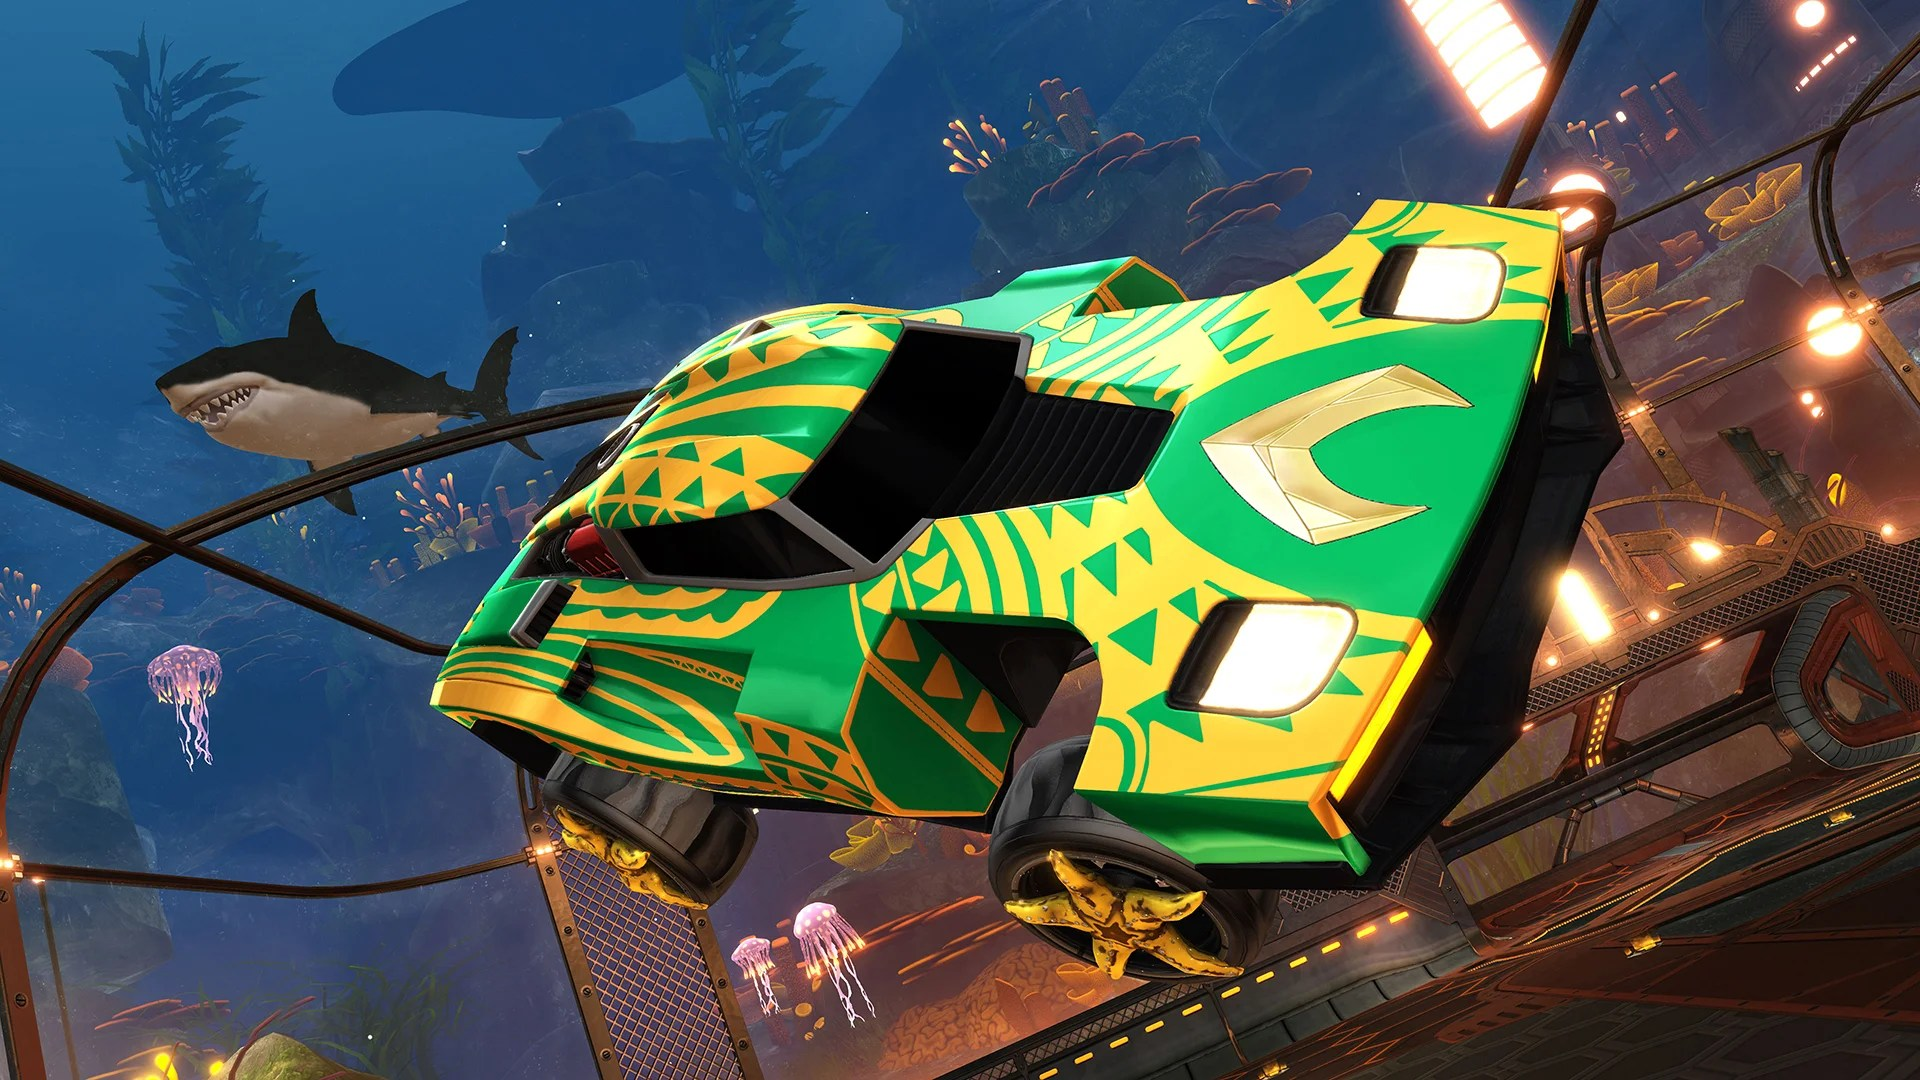 The Fast And The Furious Cars Wallpaper Dc Super Heroes Dlc Pack Rocket League 174 Official Site